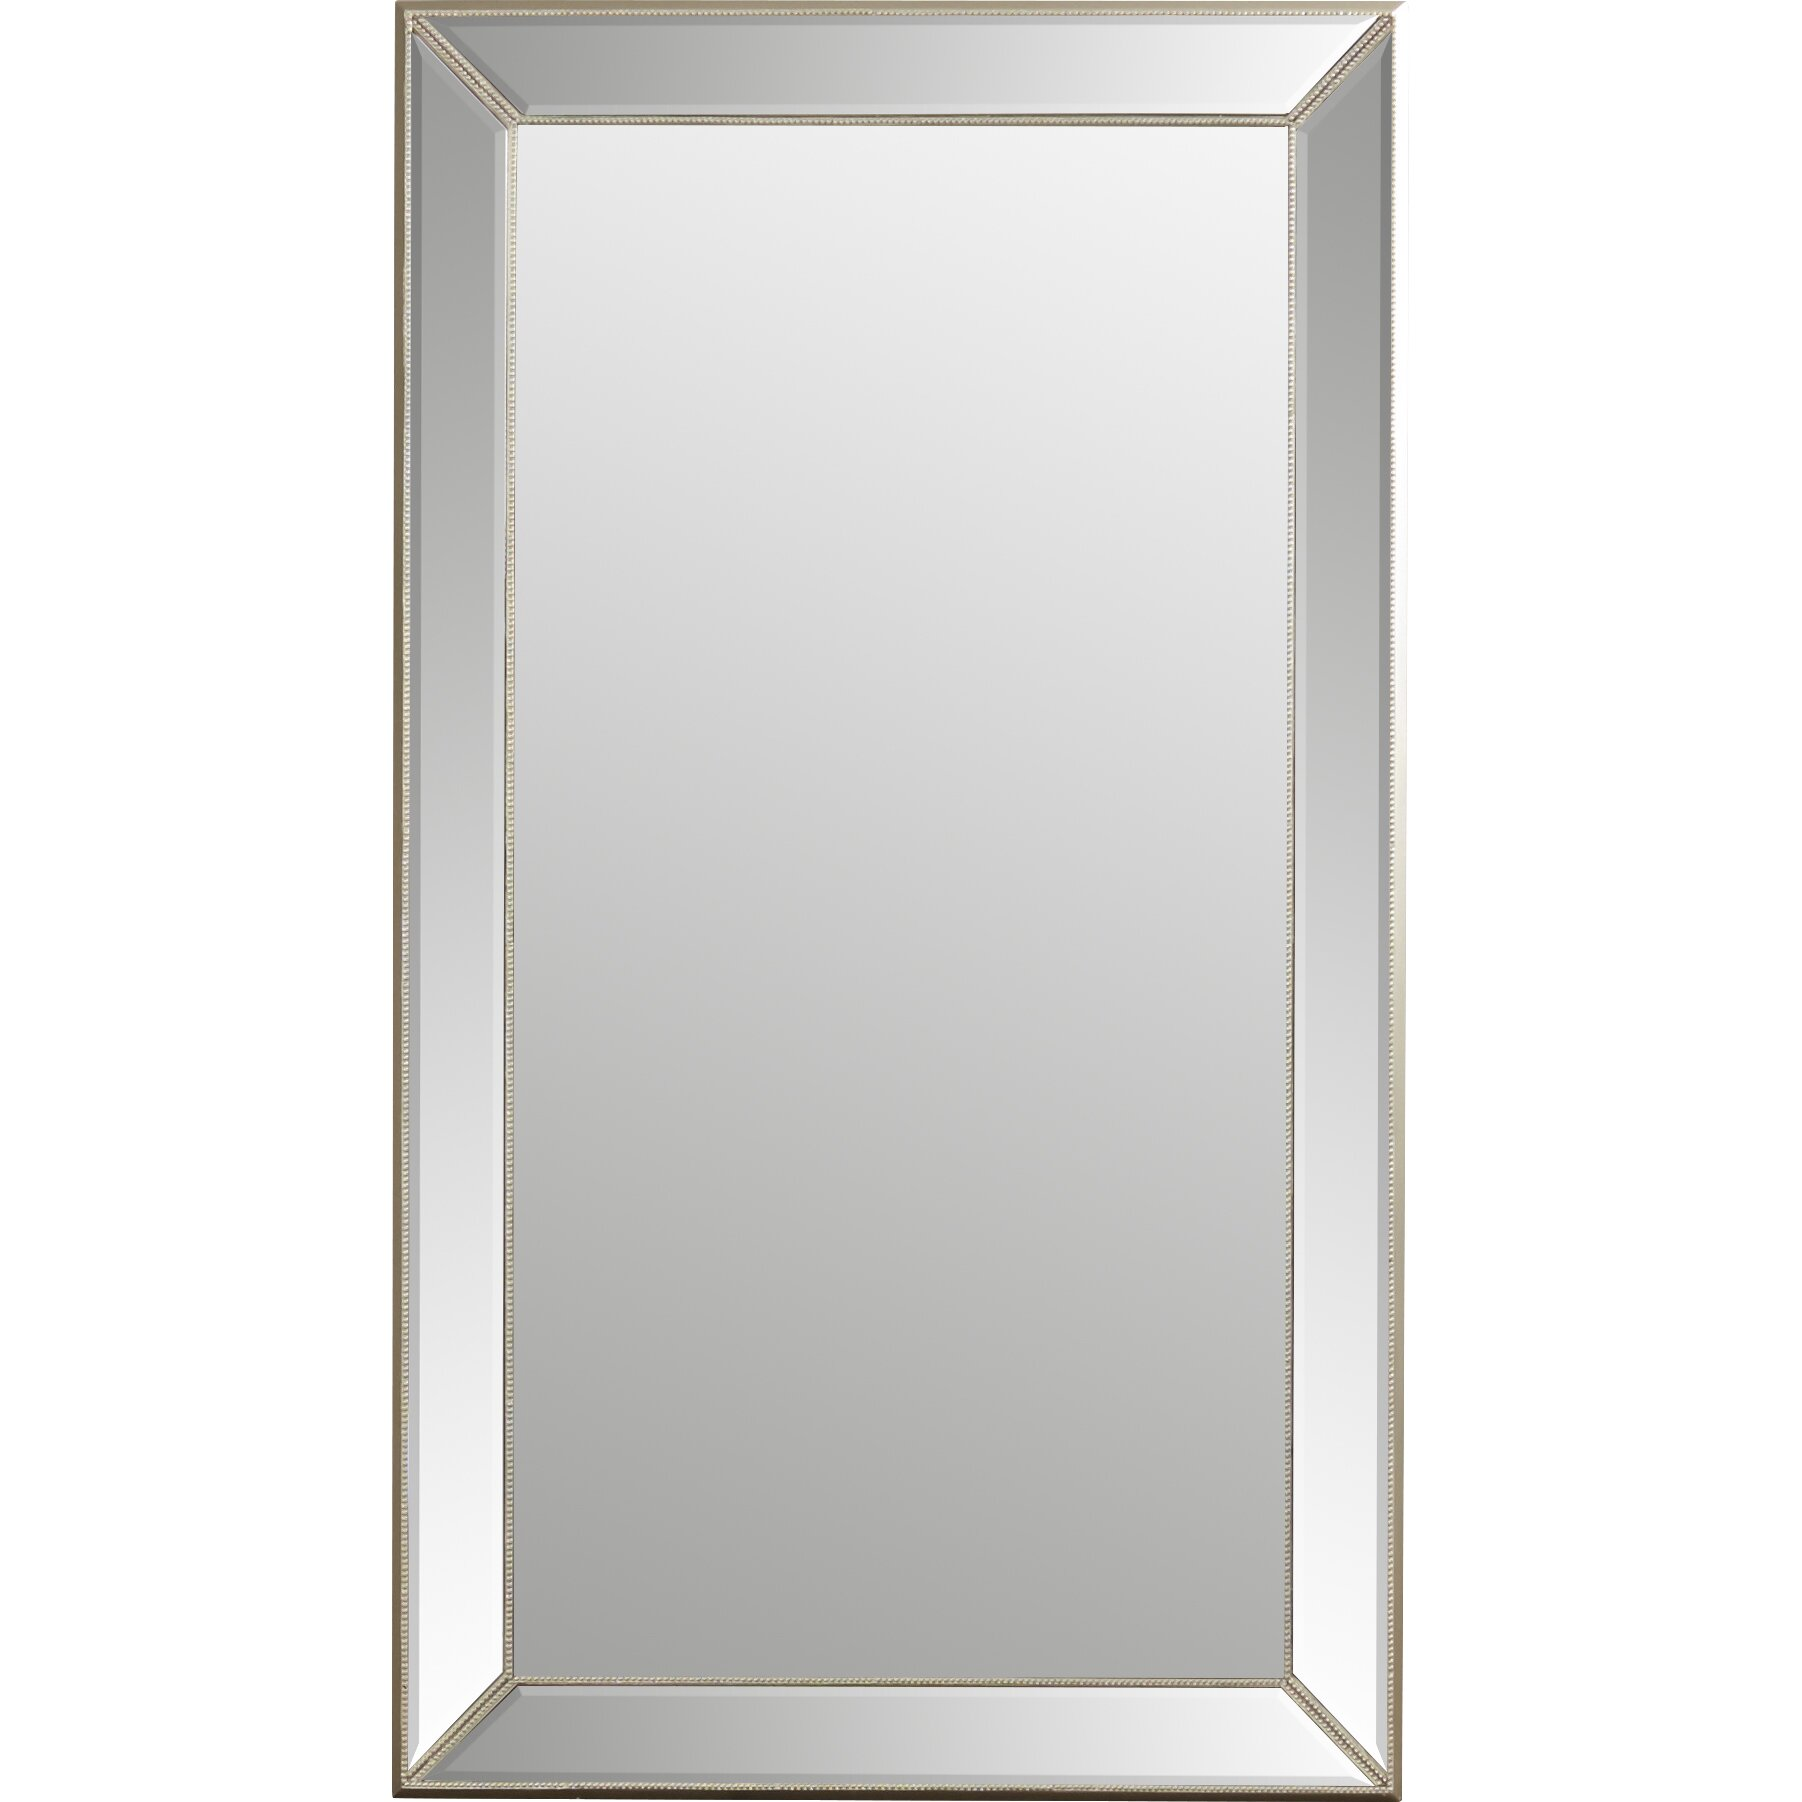 House of hampton floor mirror reviews wayfair for Types of mirrors around the house